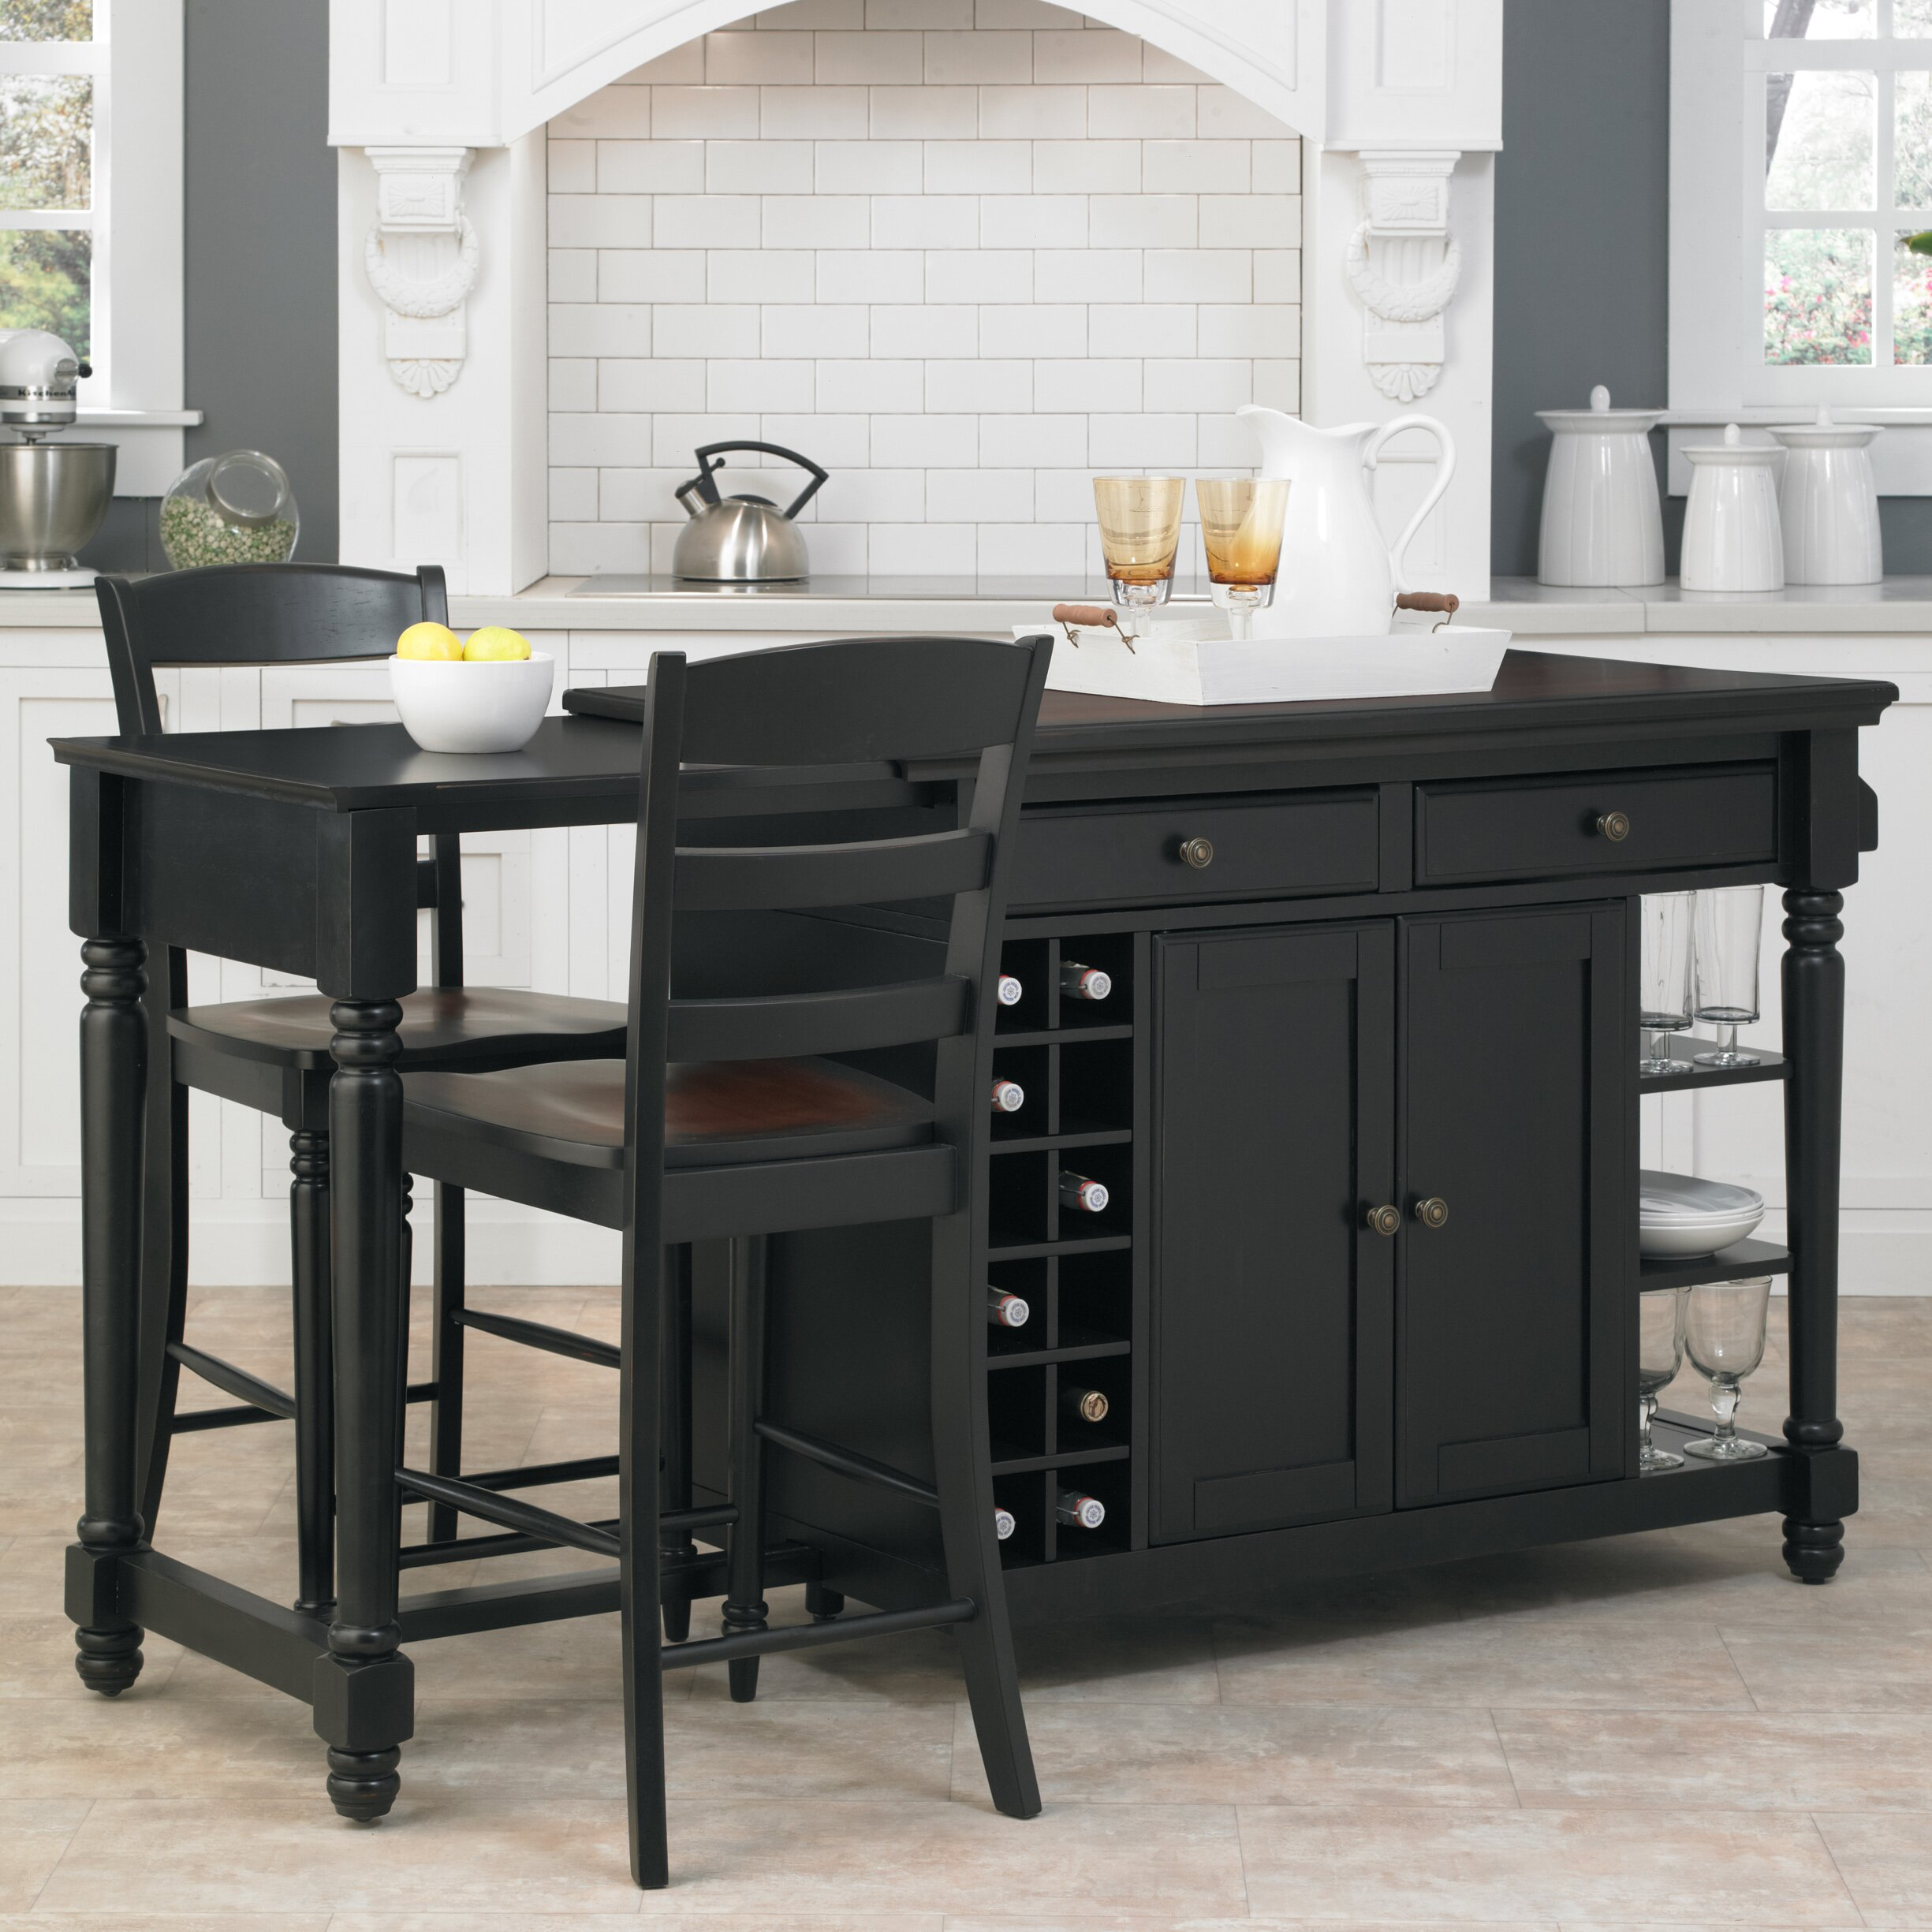 kitchen island set darby home co cleanhill 3 piece kitchen island set reviews wayfair 1742